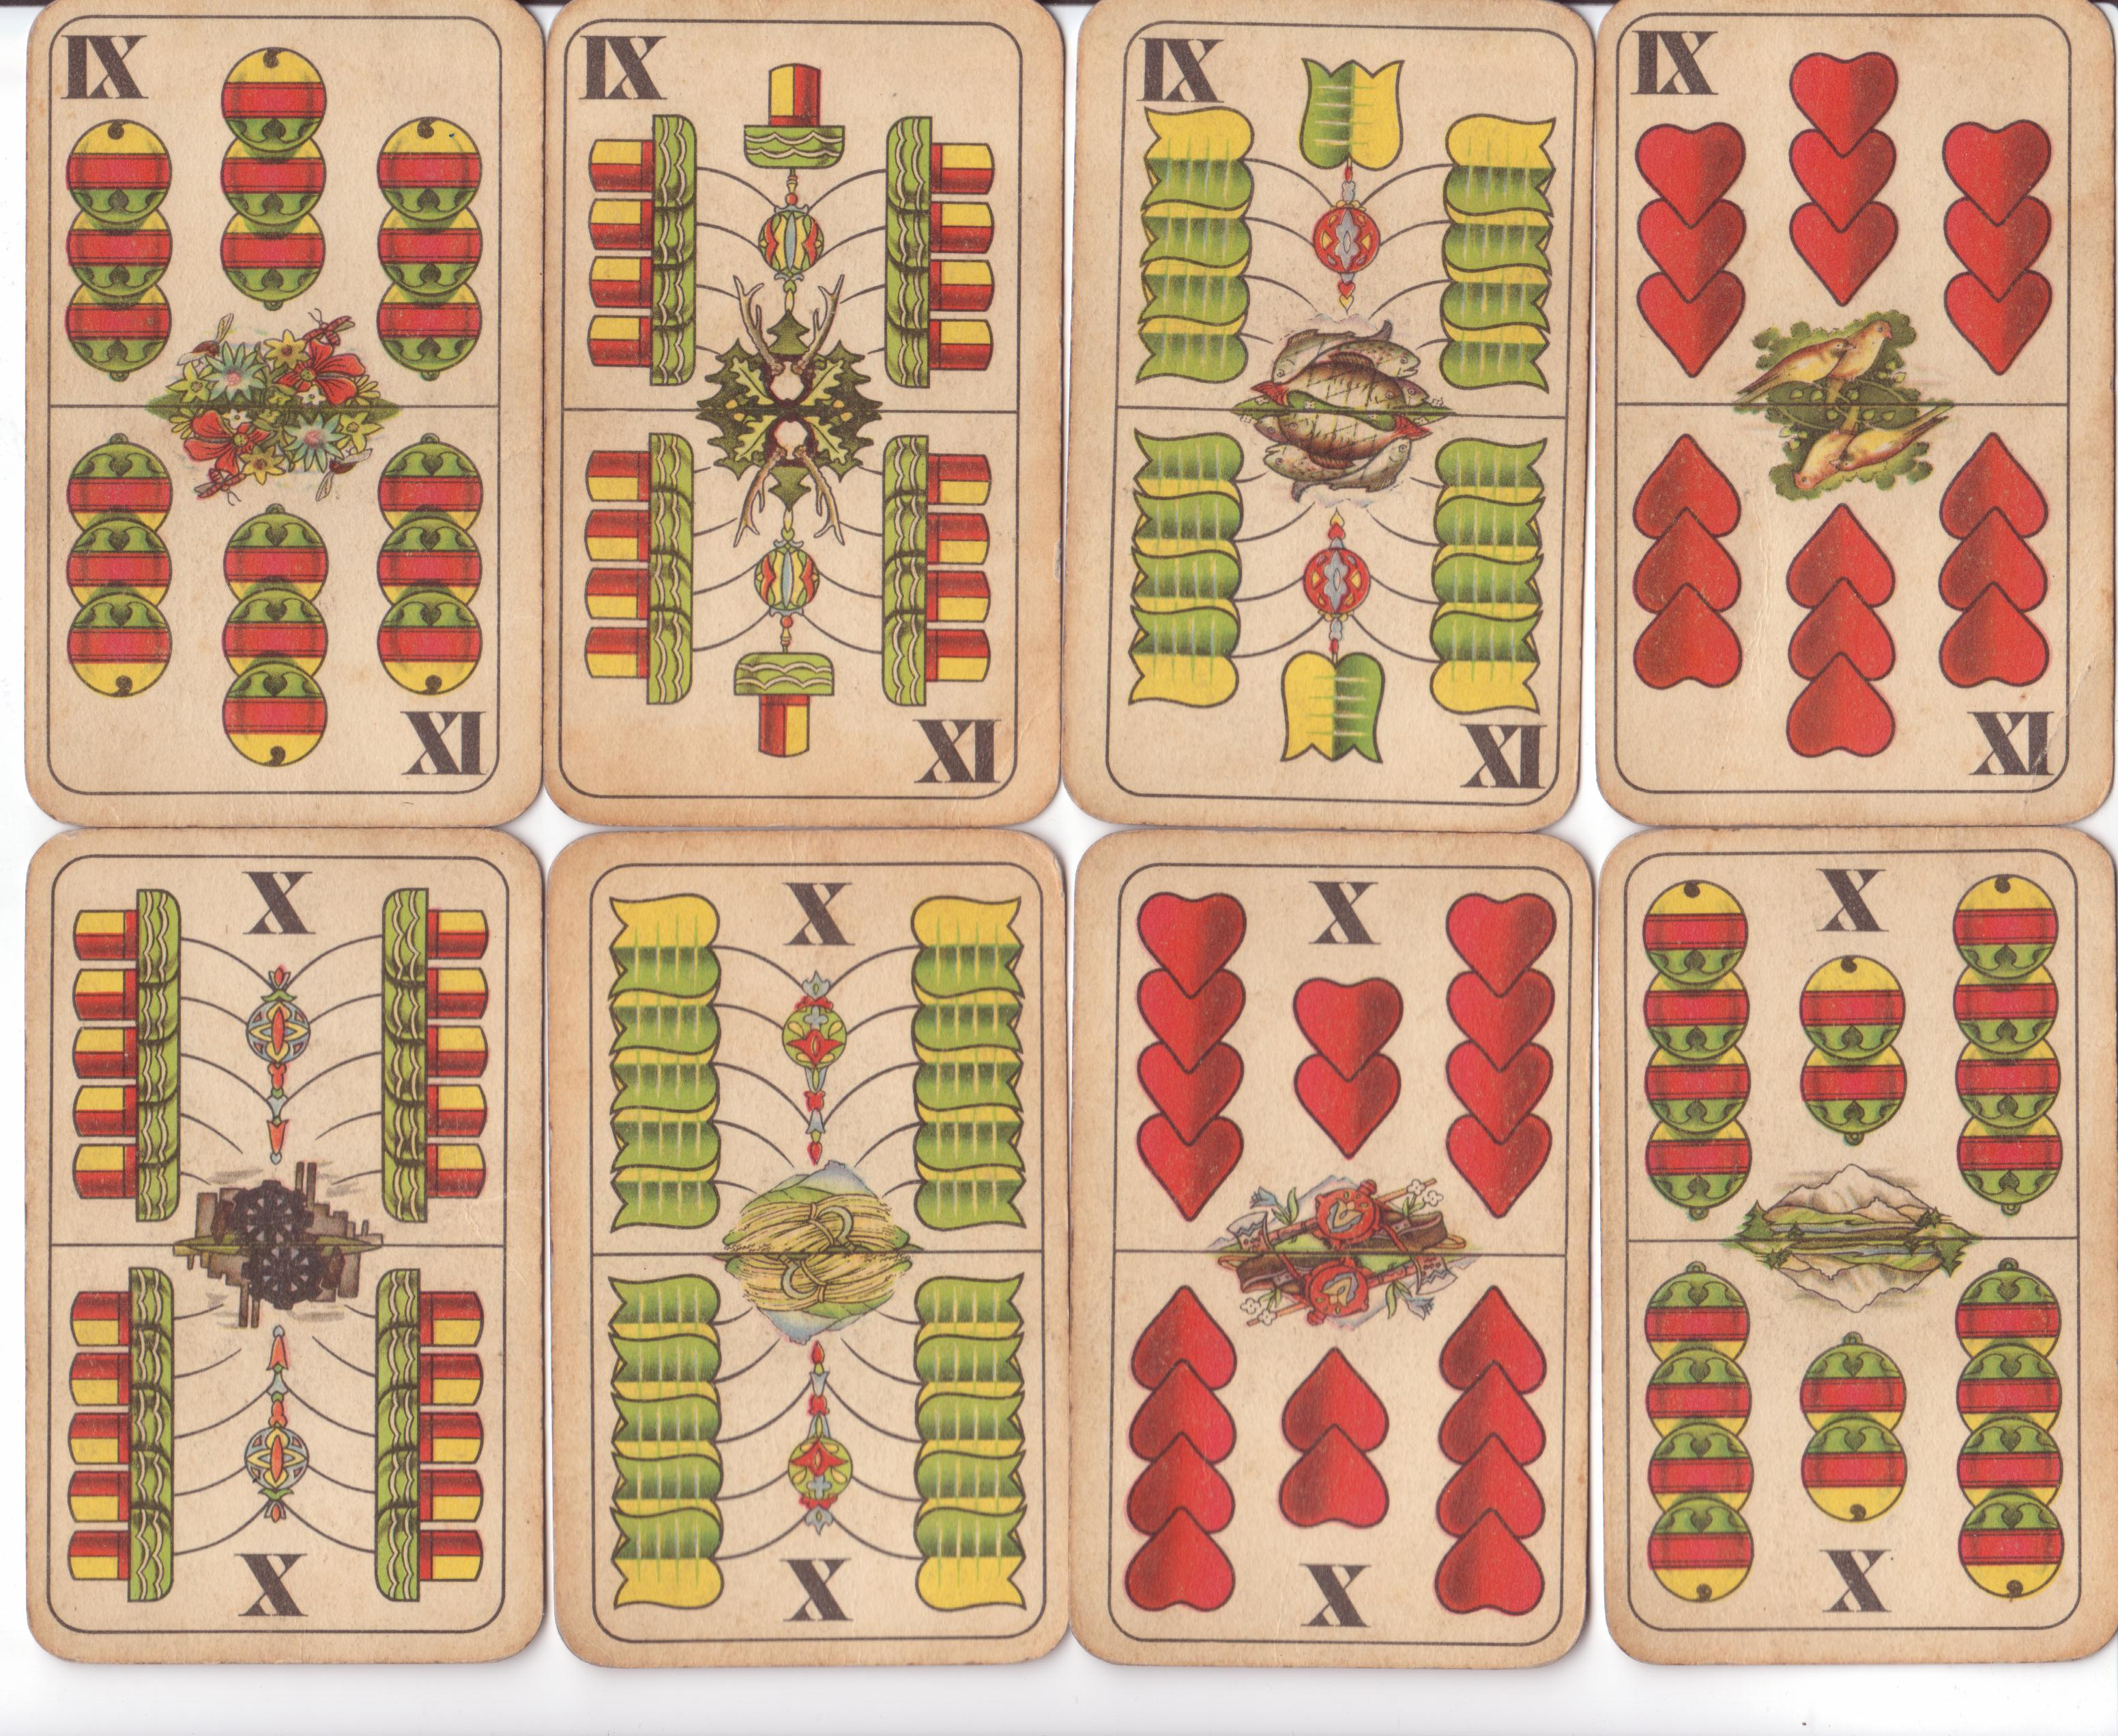 Slovak communist playing cards cca 1950-1960